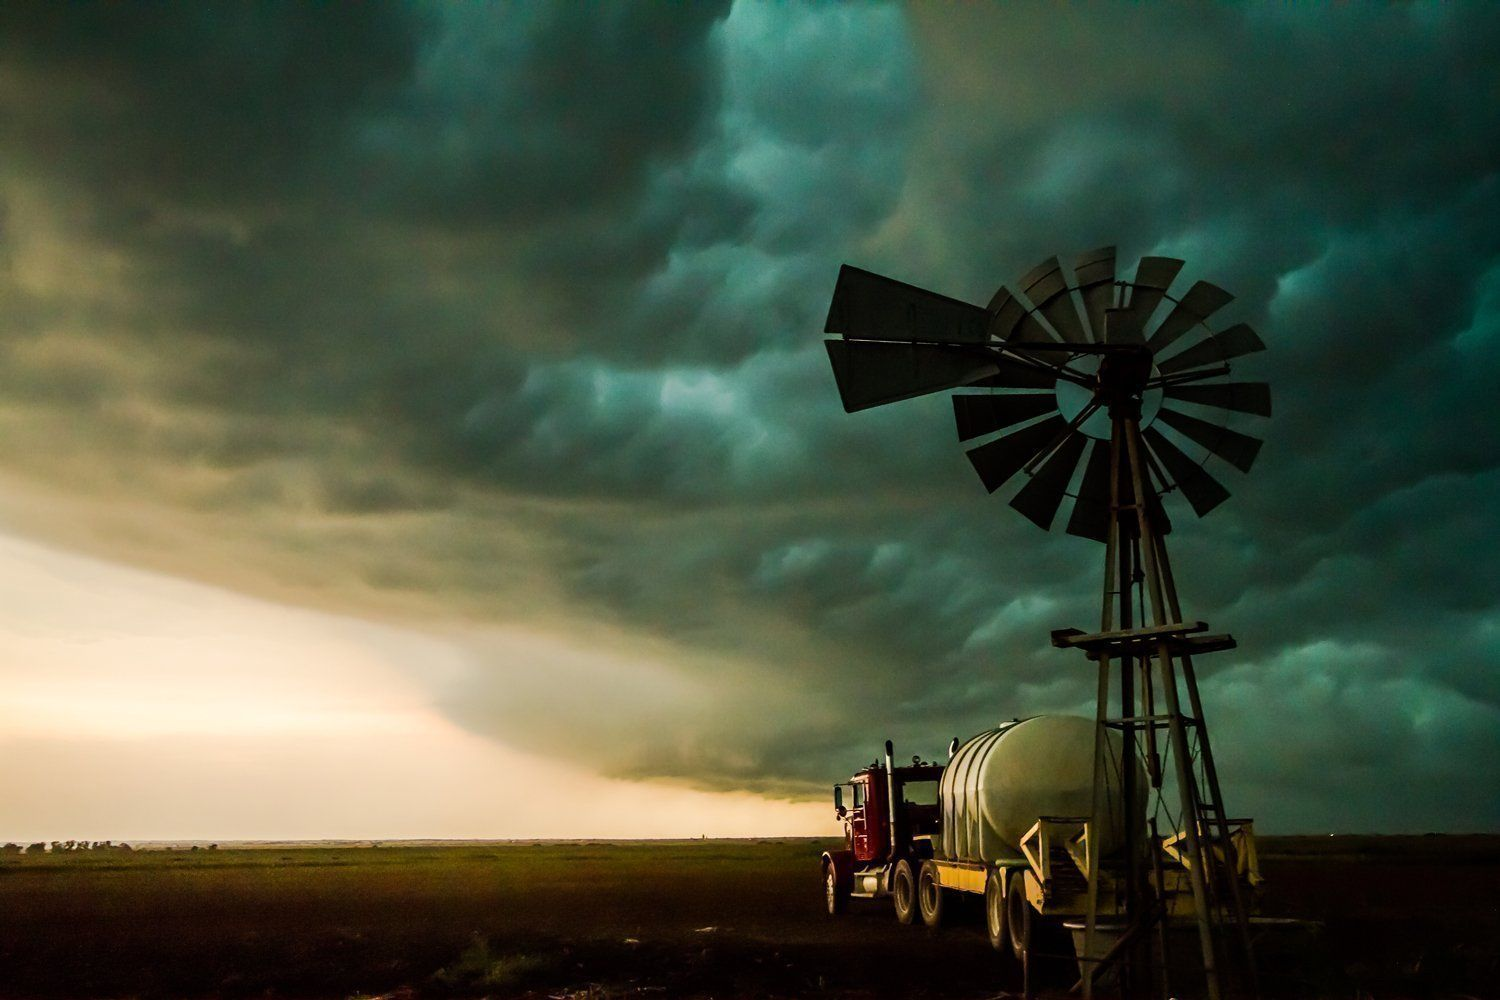 Oklahoma Pictures Art Print Windmill Truck Energy Symbolism Wall